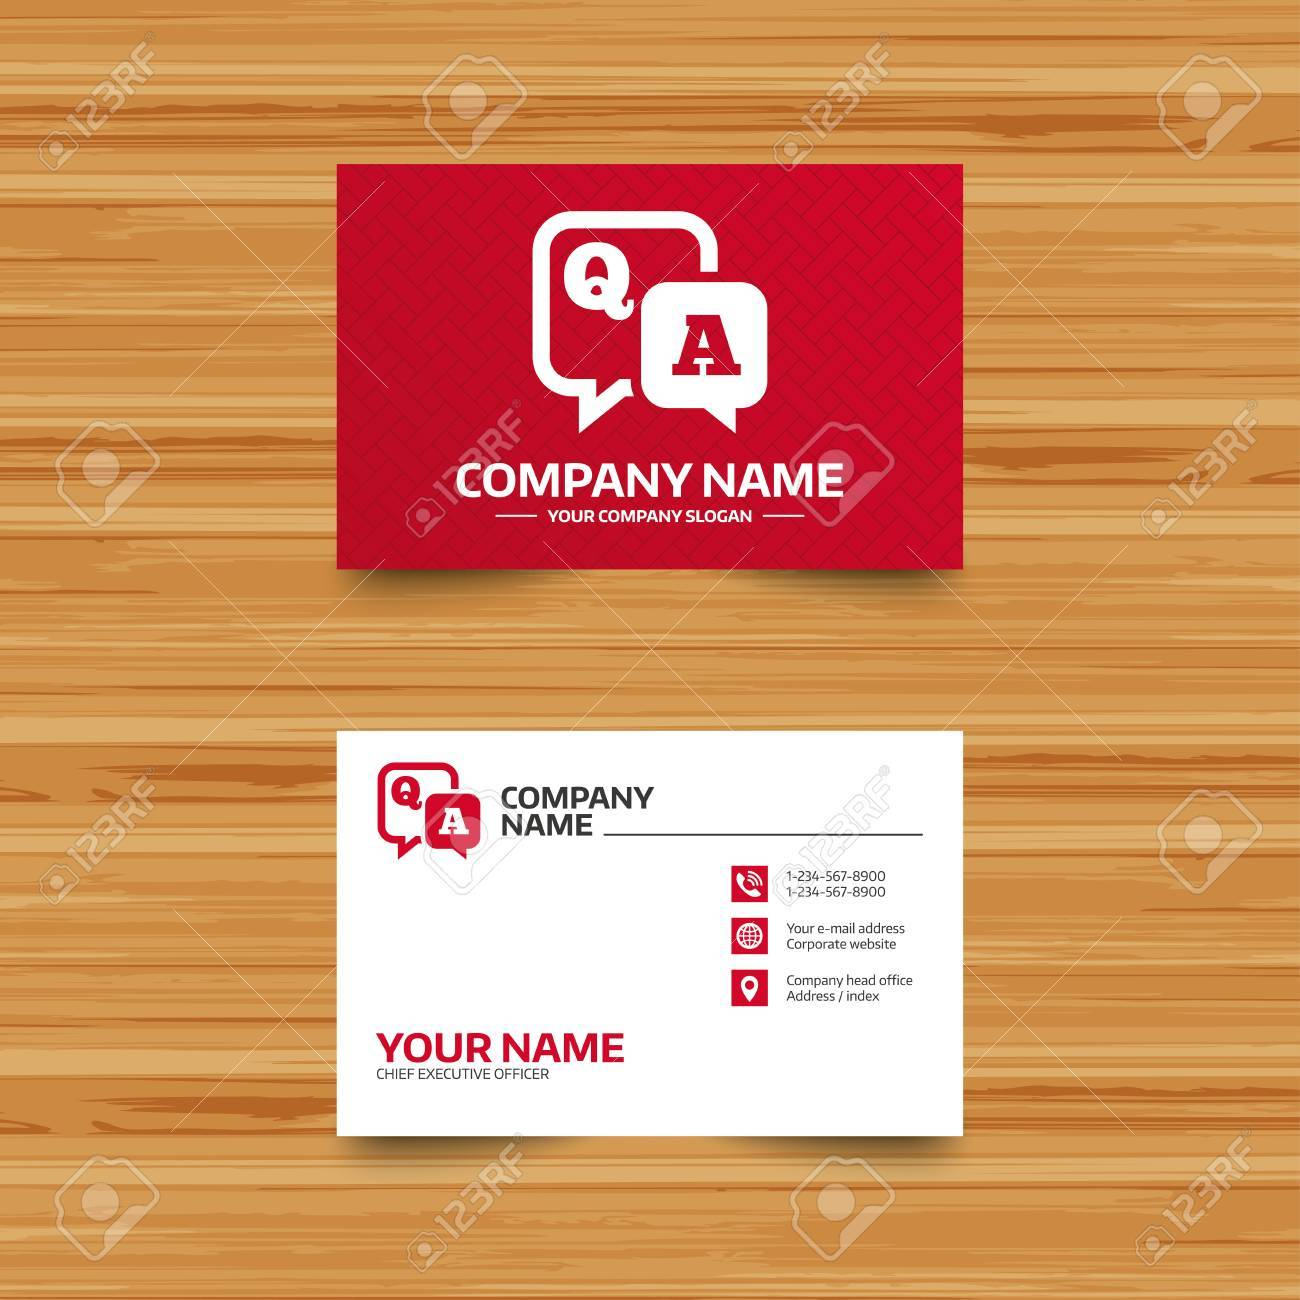 Business card template question answer sign icon qa symbol business card template question answer sign icon qa symbol phone globe and reheart Images